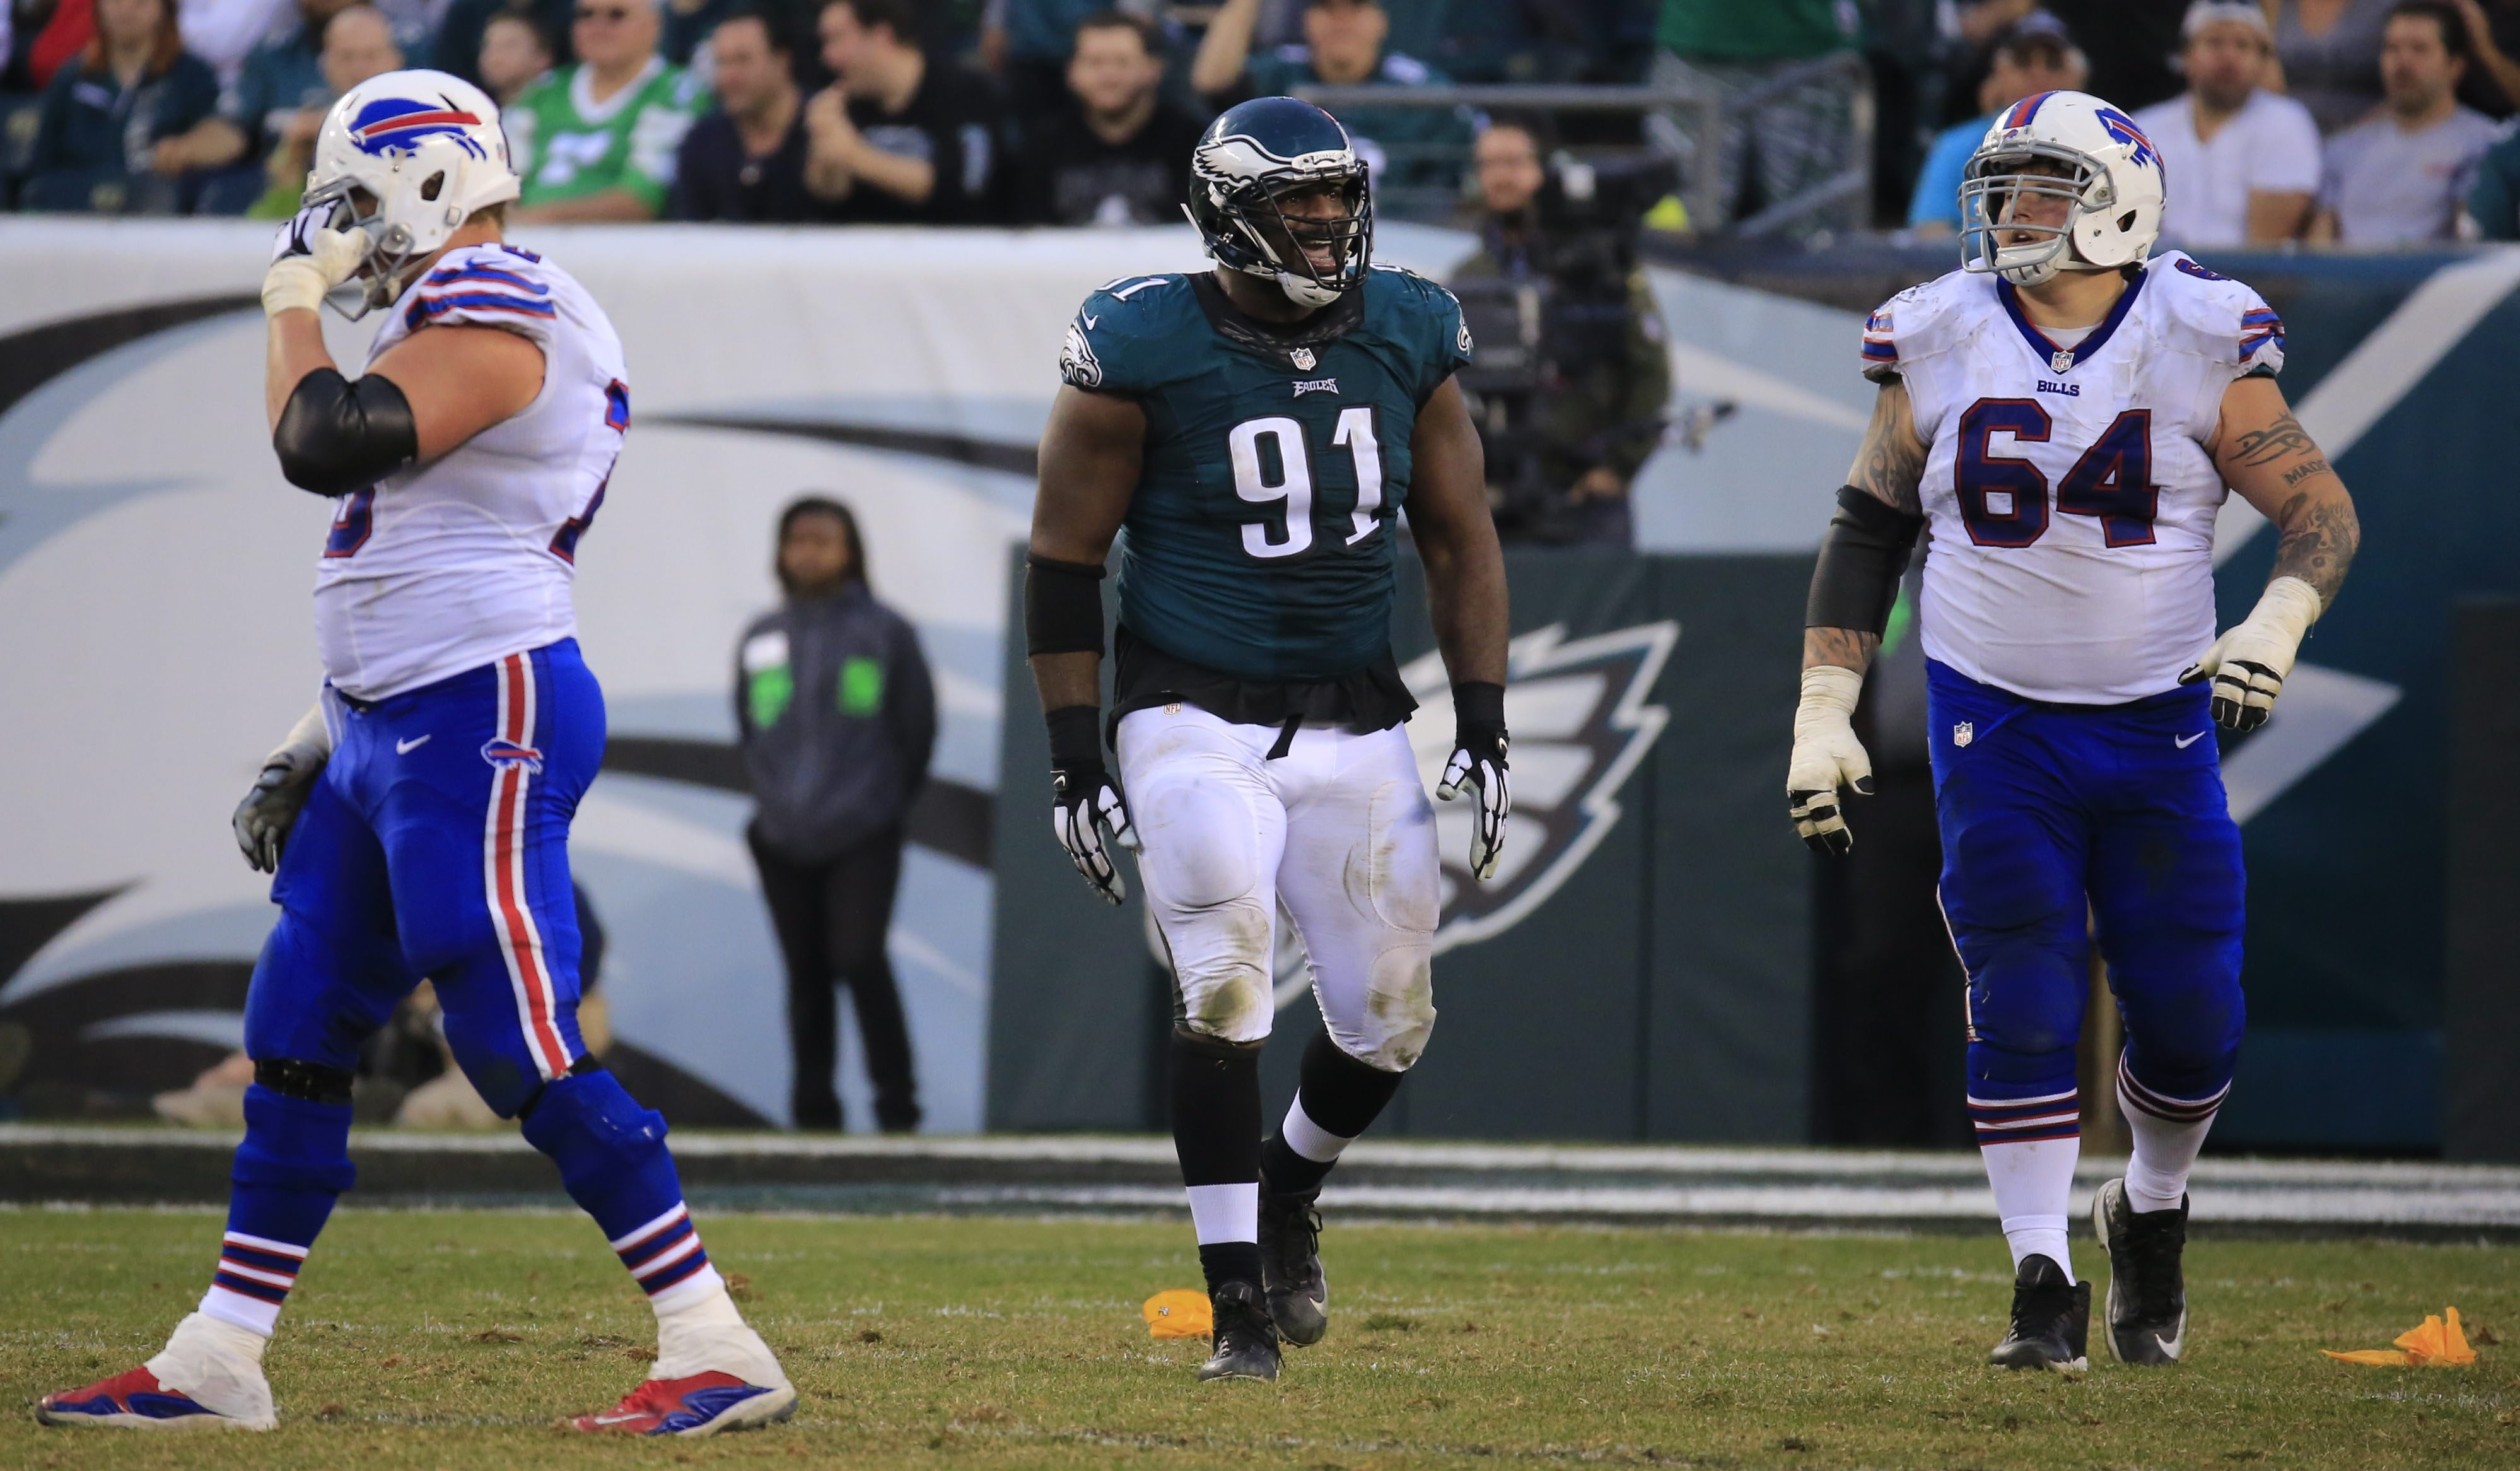 """Bills offensive guard Richie Incognito said Eagles defensive end Fletcher Cox, left, """"ate my lunch today. … He got me early and often."""""""